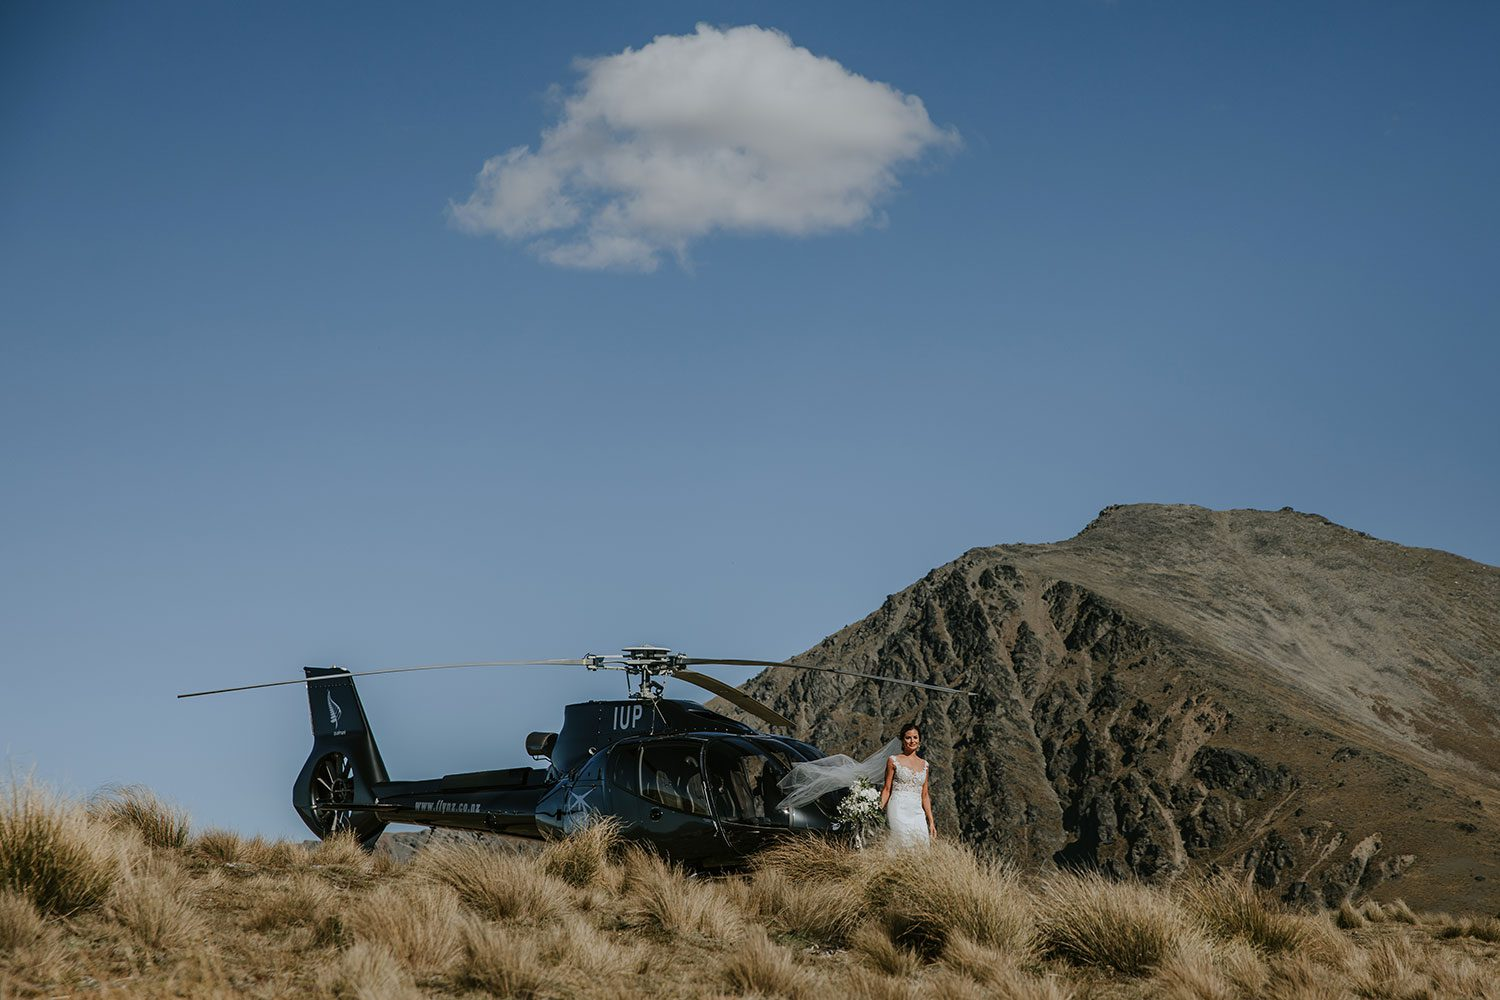 Ashleigh and Michael - helicopter on hill